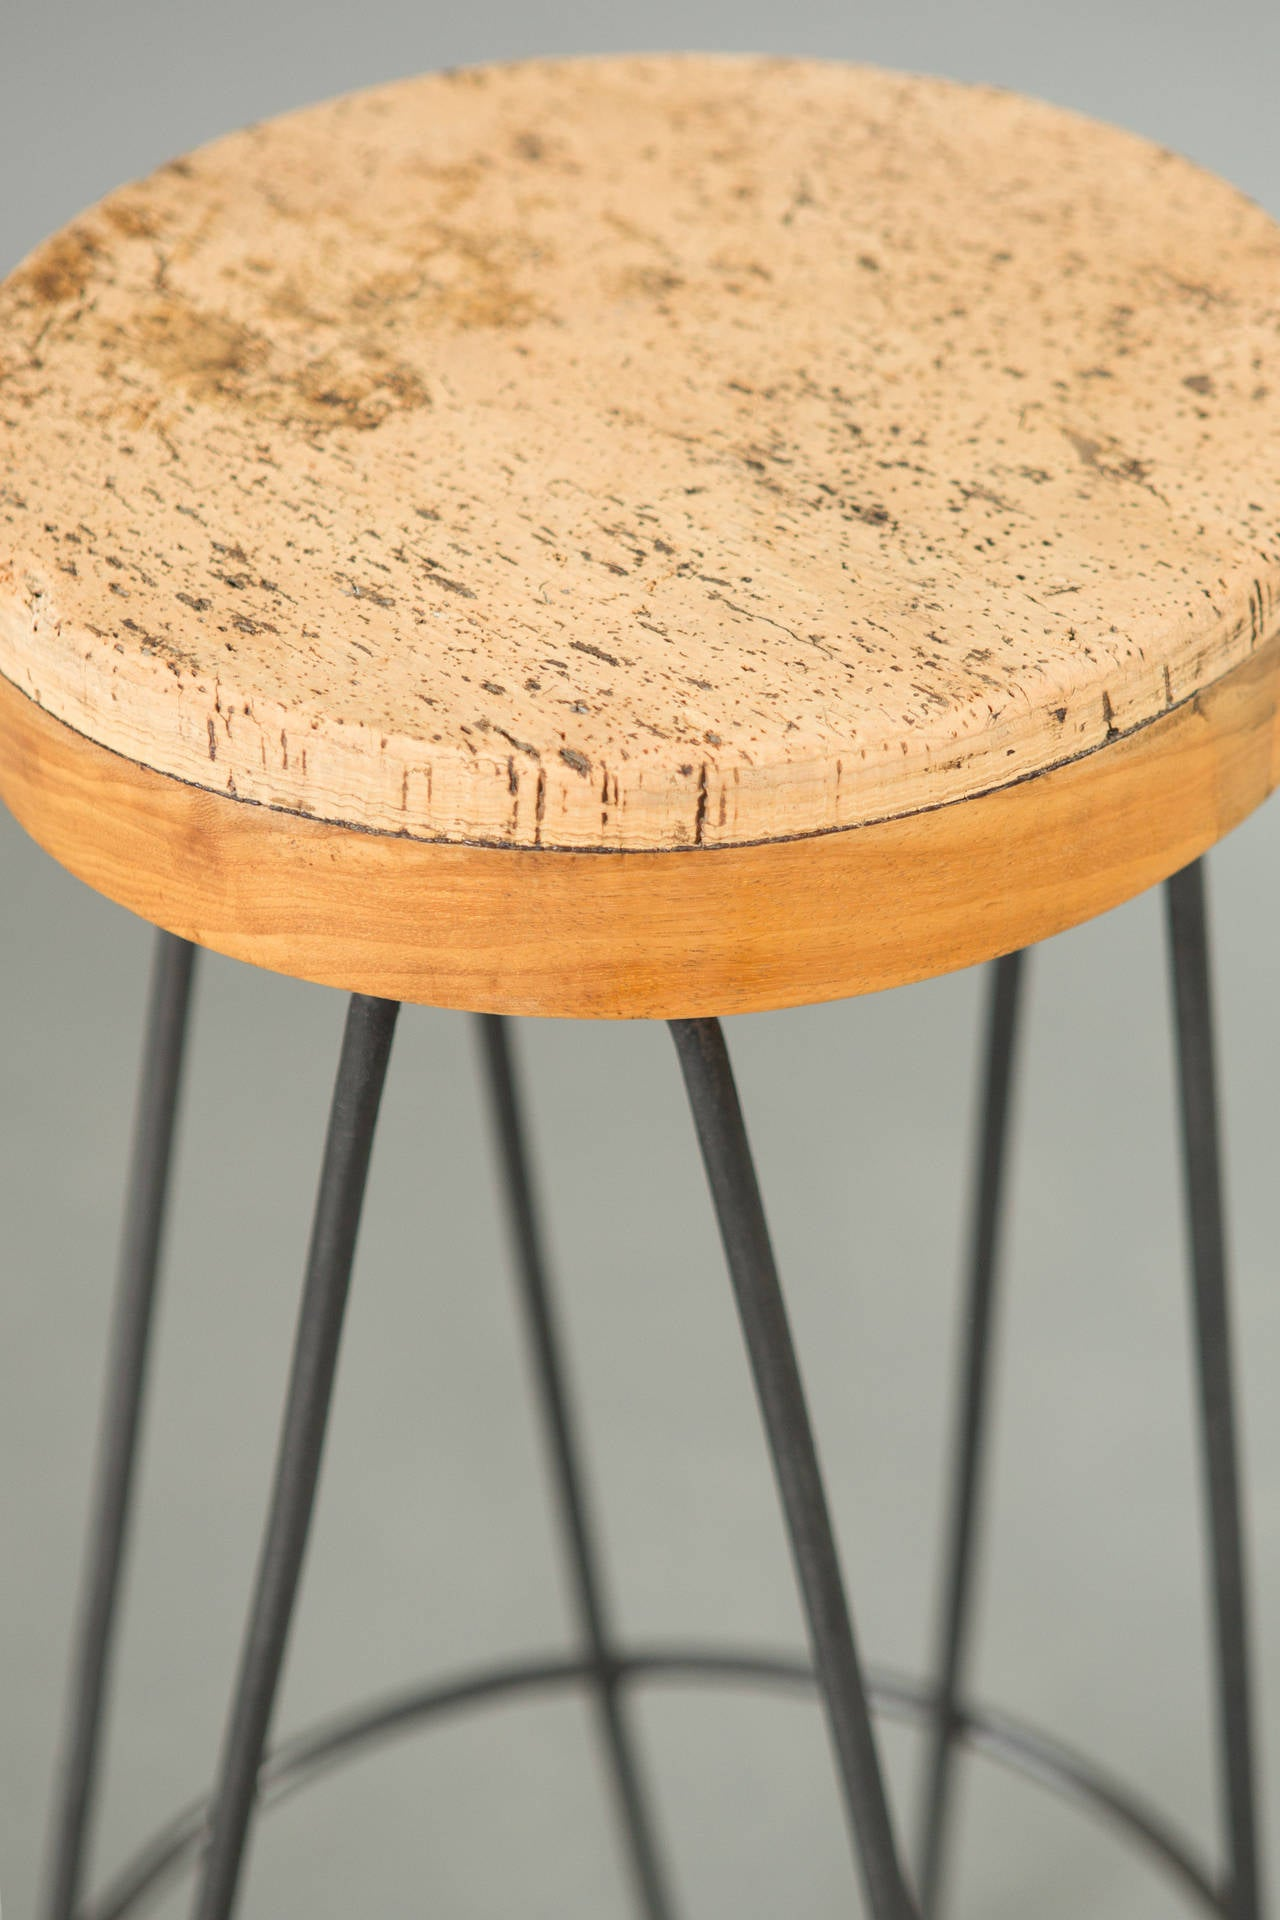 Pair of 1960s Industrial Stools with Cork Tops For Sale 3